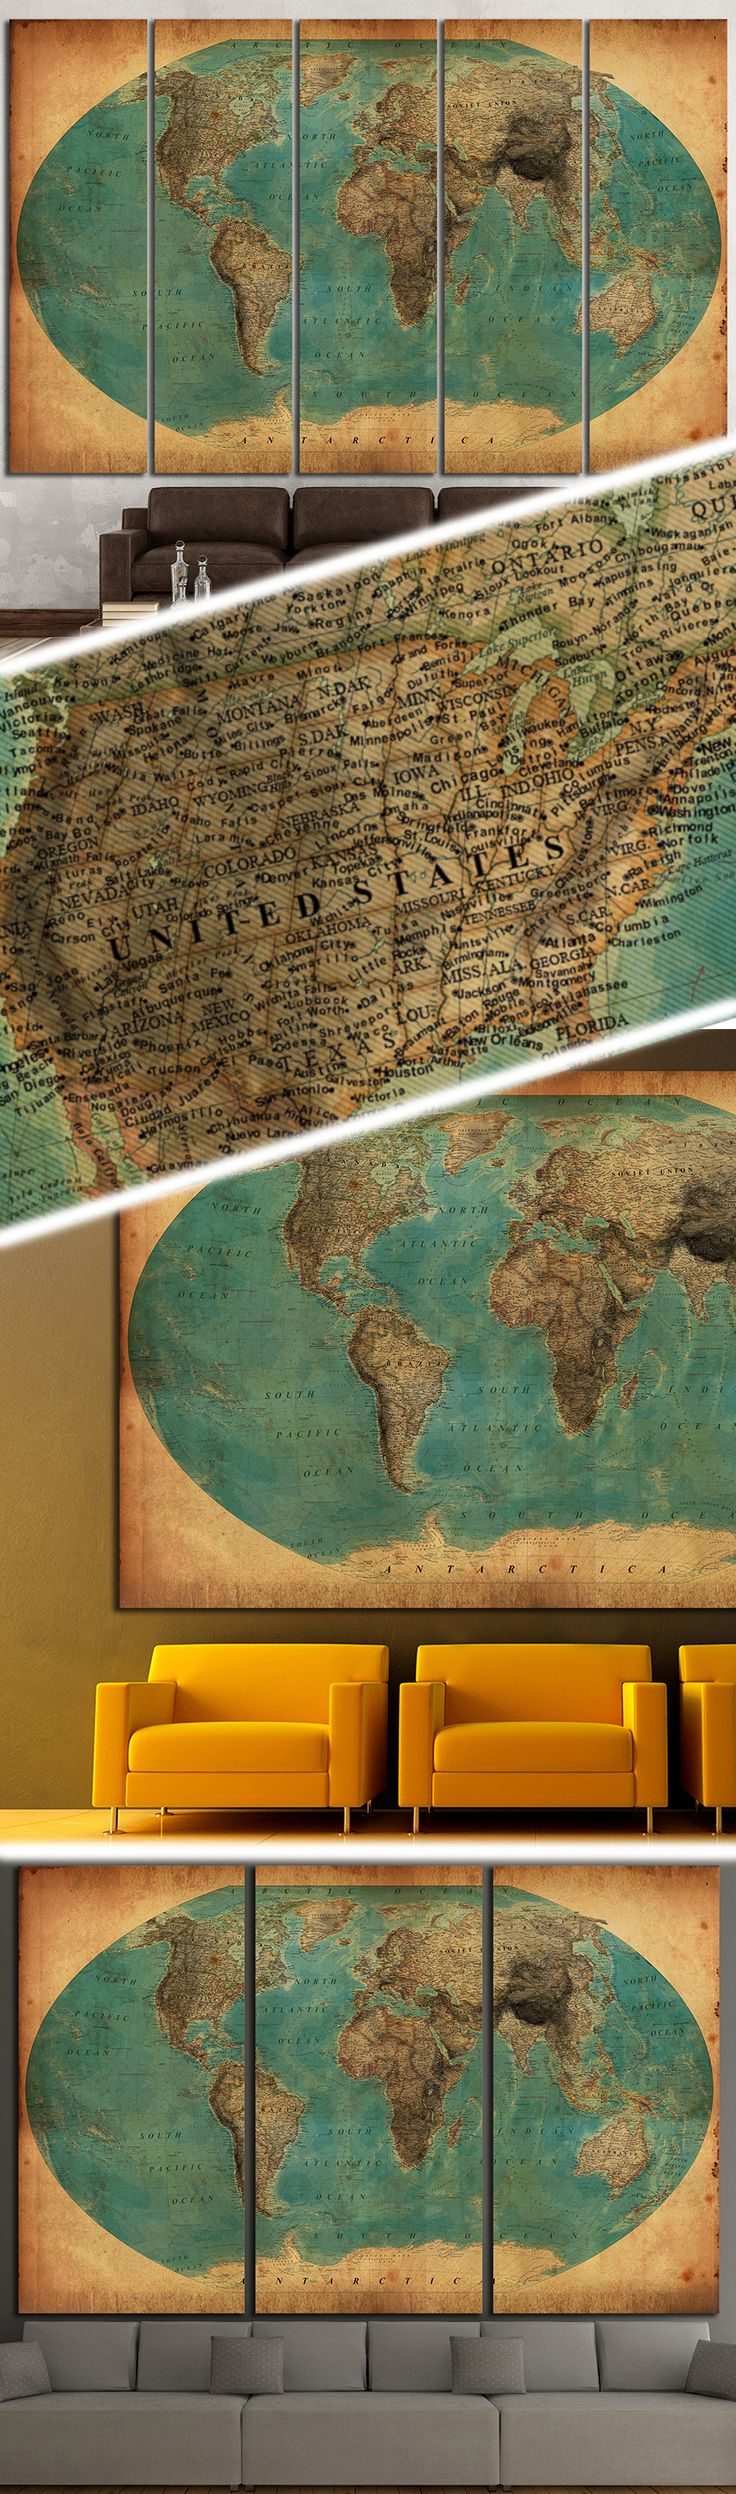 Old World Map 1458 Canvas Print 170